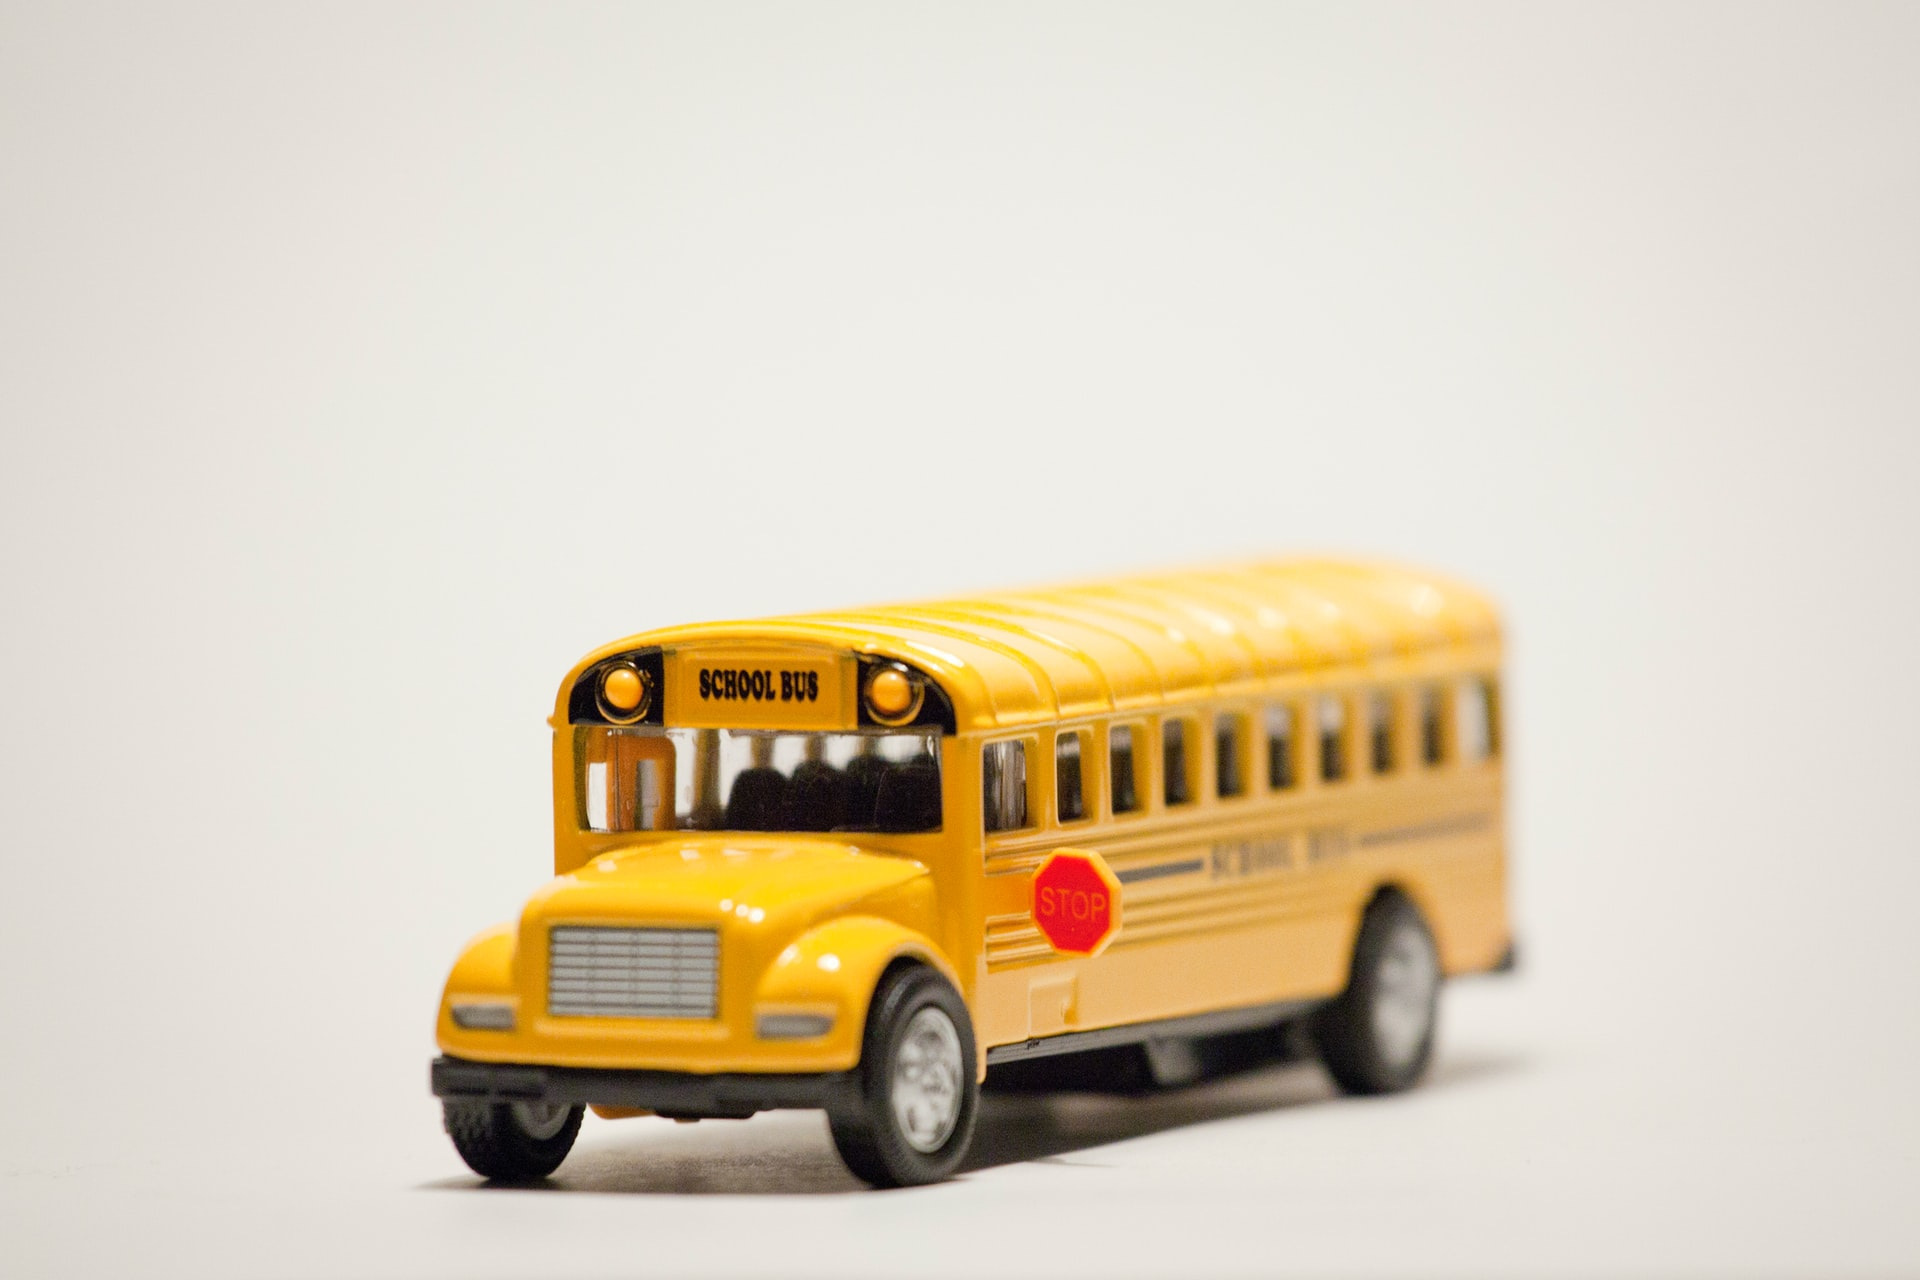 Small toy school bus